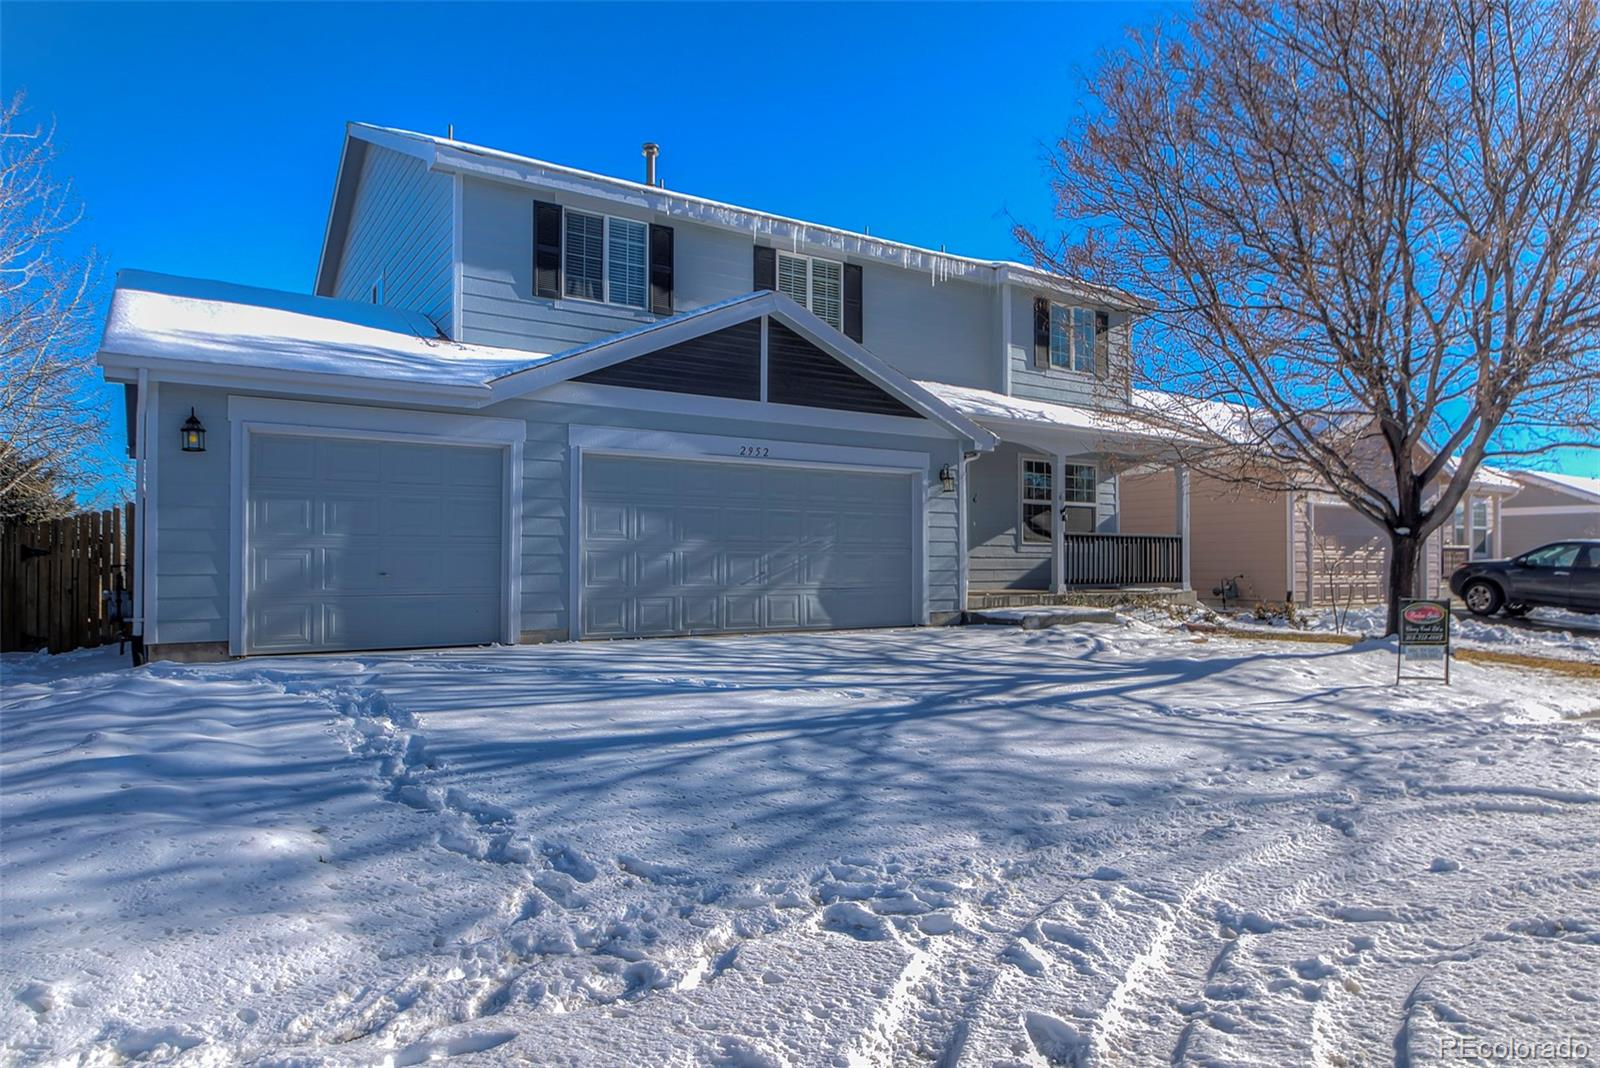 Don't blink or you'll miss it! This beautifully remodeled home is all ready for your buyer! New paint, New countertop, New wood floor in the living area, New refrigerator and stove, New carpet, close to shopping and parks.